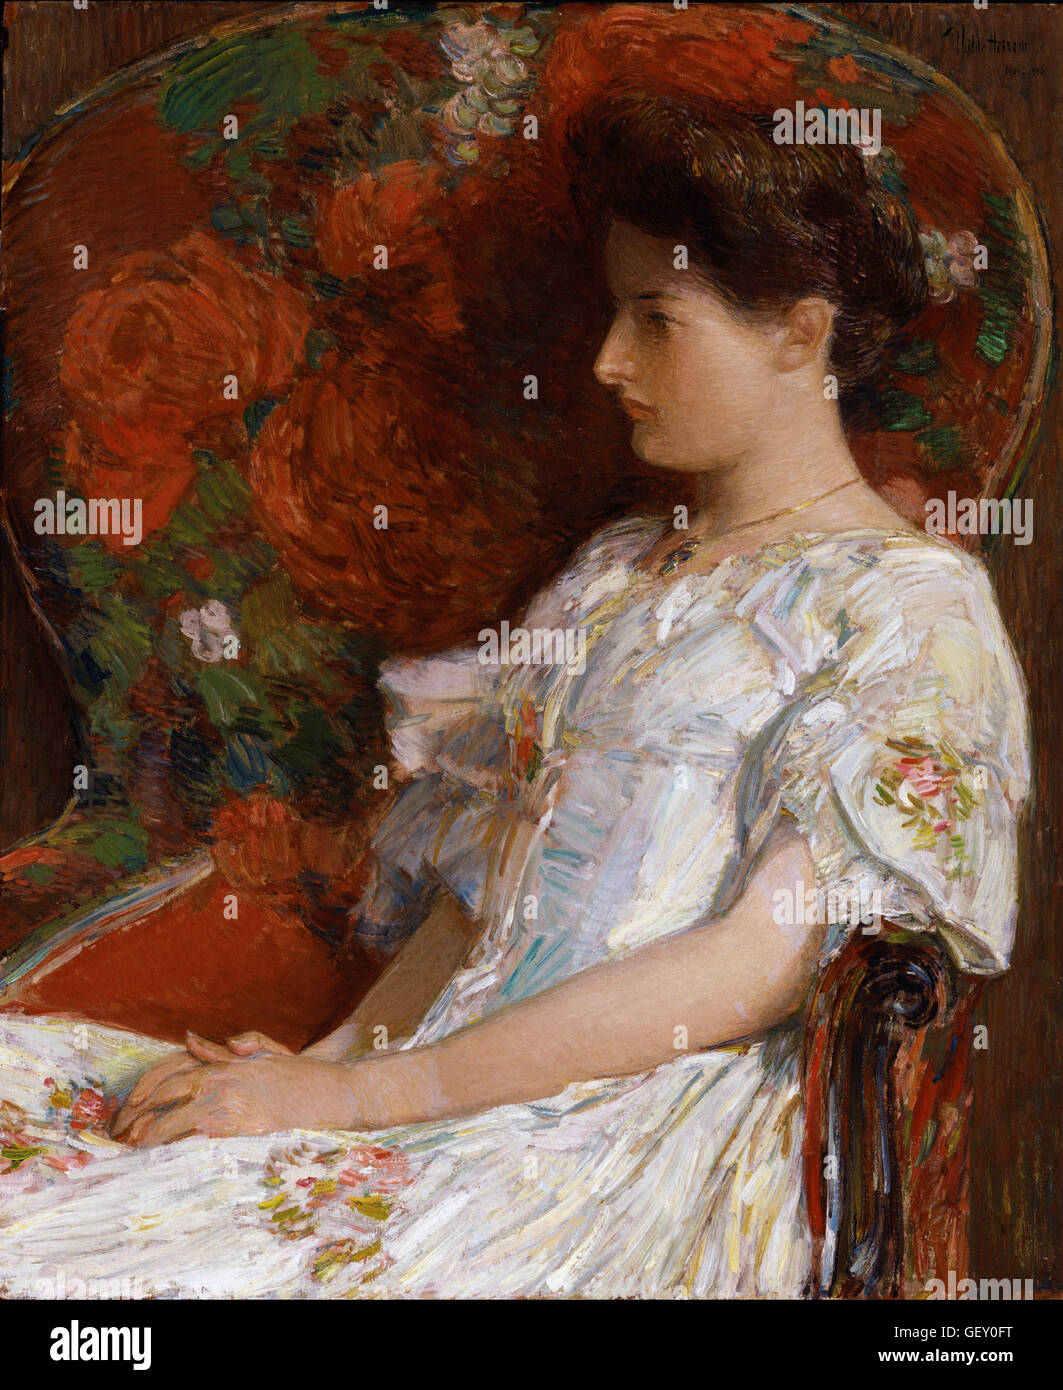 Childe Hassam - The Victorian Chair - Stock Image